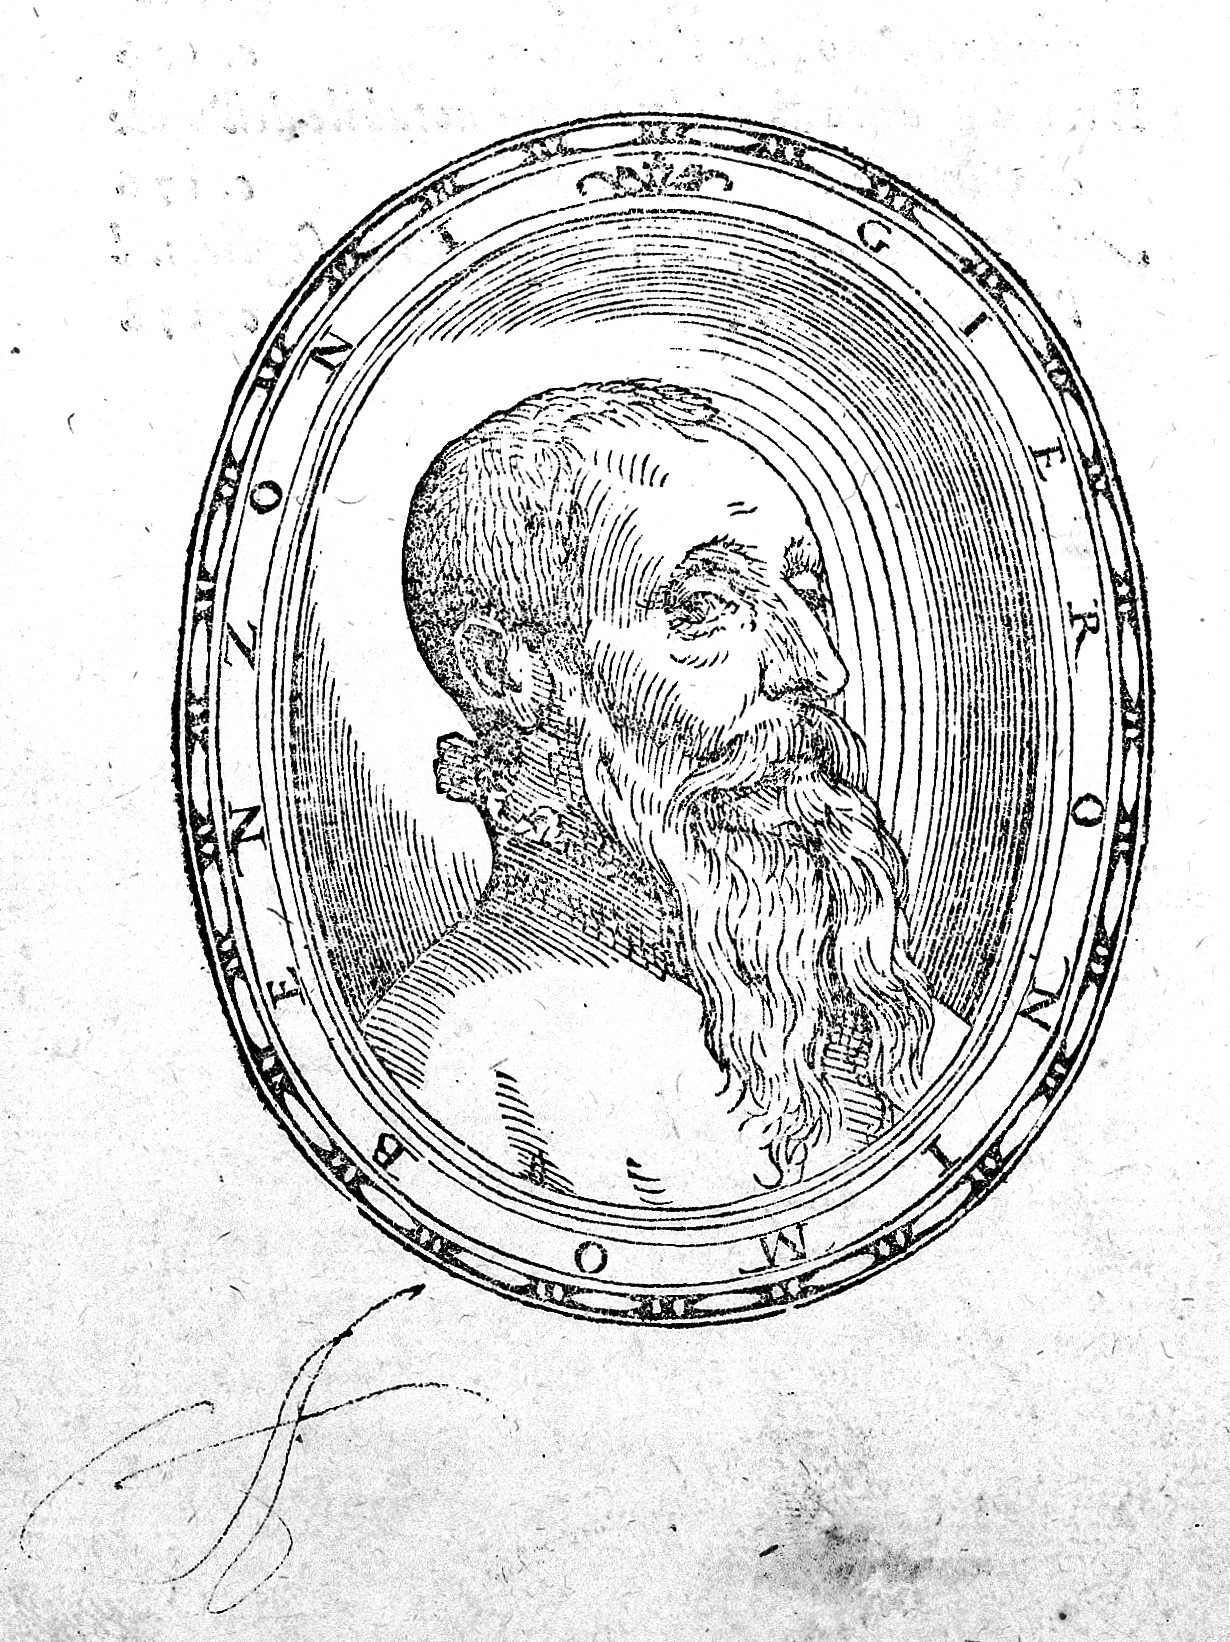 L0020190 Portrait of Girolamo Benzoni Credit: Wellcome Library, London. Wellcome Images images@wellcome.ac.uk https://wellcomeimages.org Portrait of Girolamo Benzoni Woodcut 1572 La Historia del Mondo Nuovo Benzoni, Girolamo Published: 1572 Copyrighted work available under Creative Commons Attribution only licence CC BY 4.0 https://creativecommons.org/licenses/by/4.0/